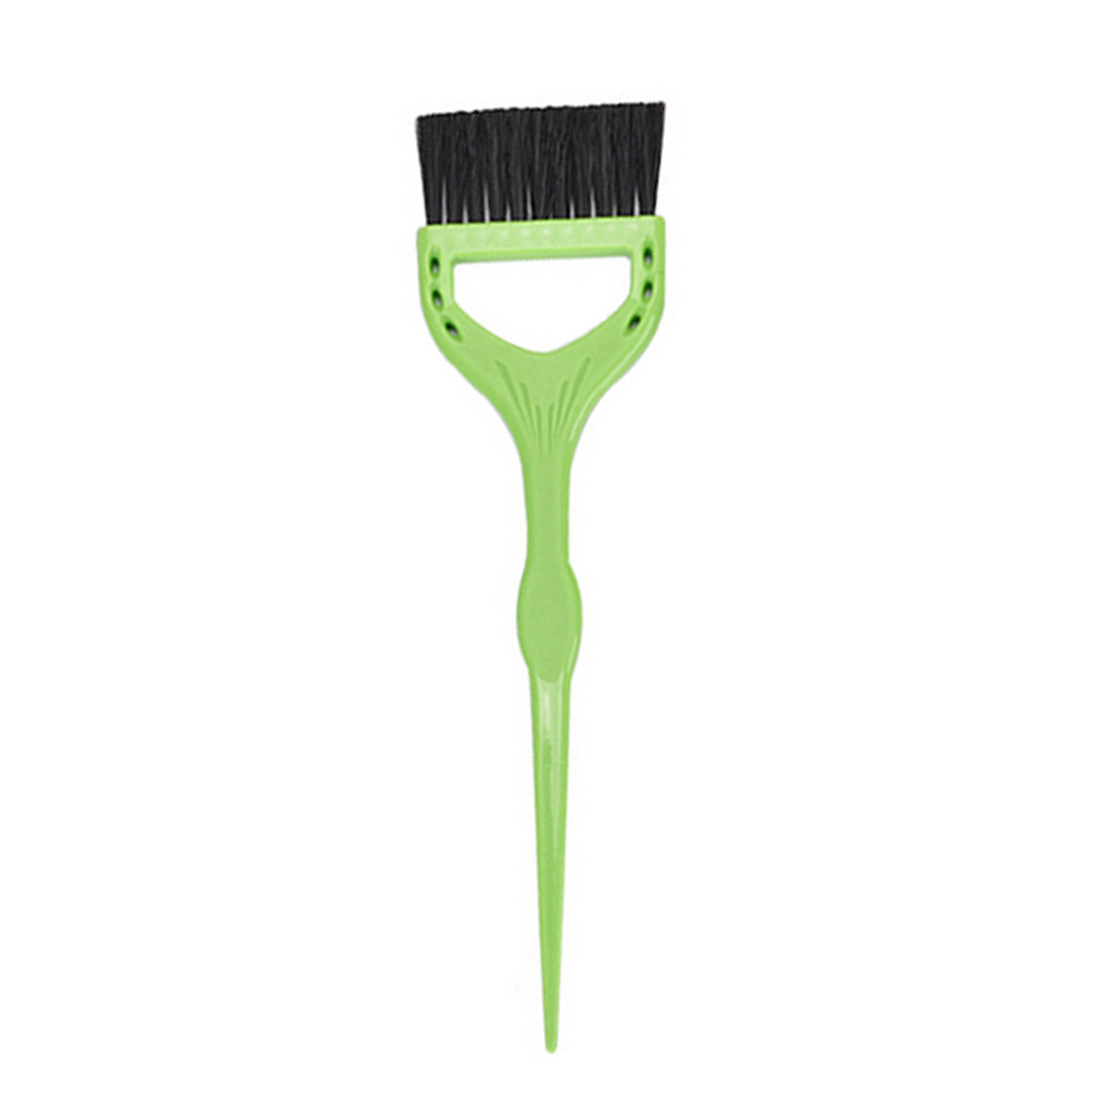 Plastic Health  Hair Brushes Application Hall Hue Perm Lye Dye Coloring DIY Hairdressing Tool Combs Comb Tools Dyeing Hall